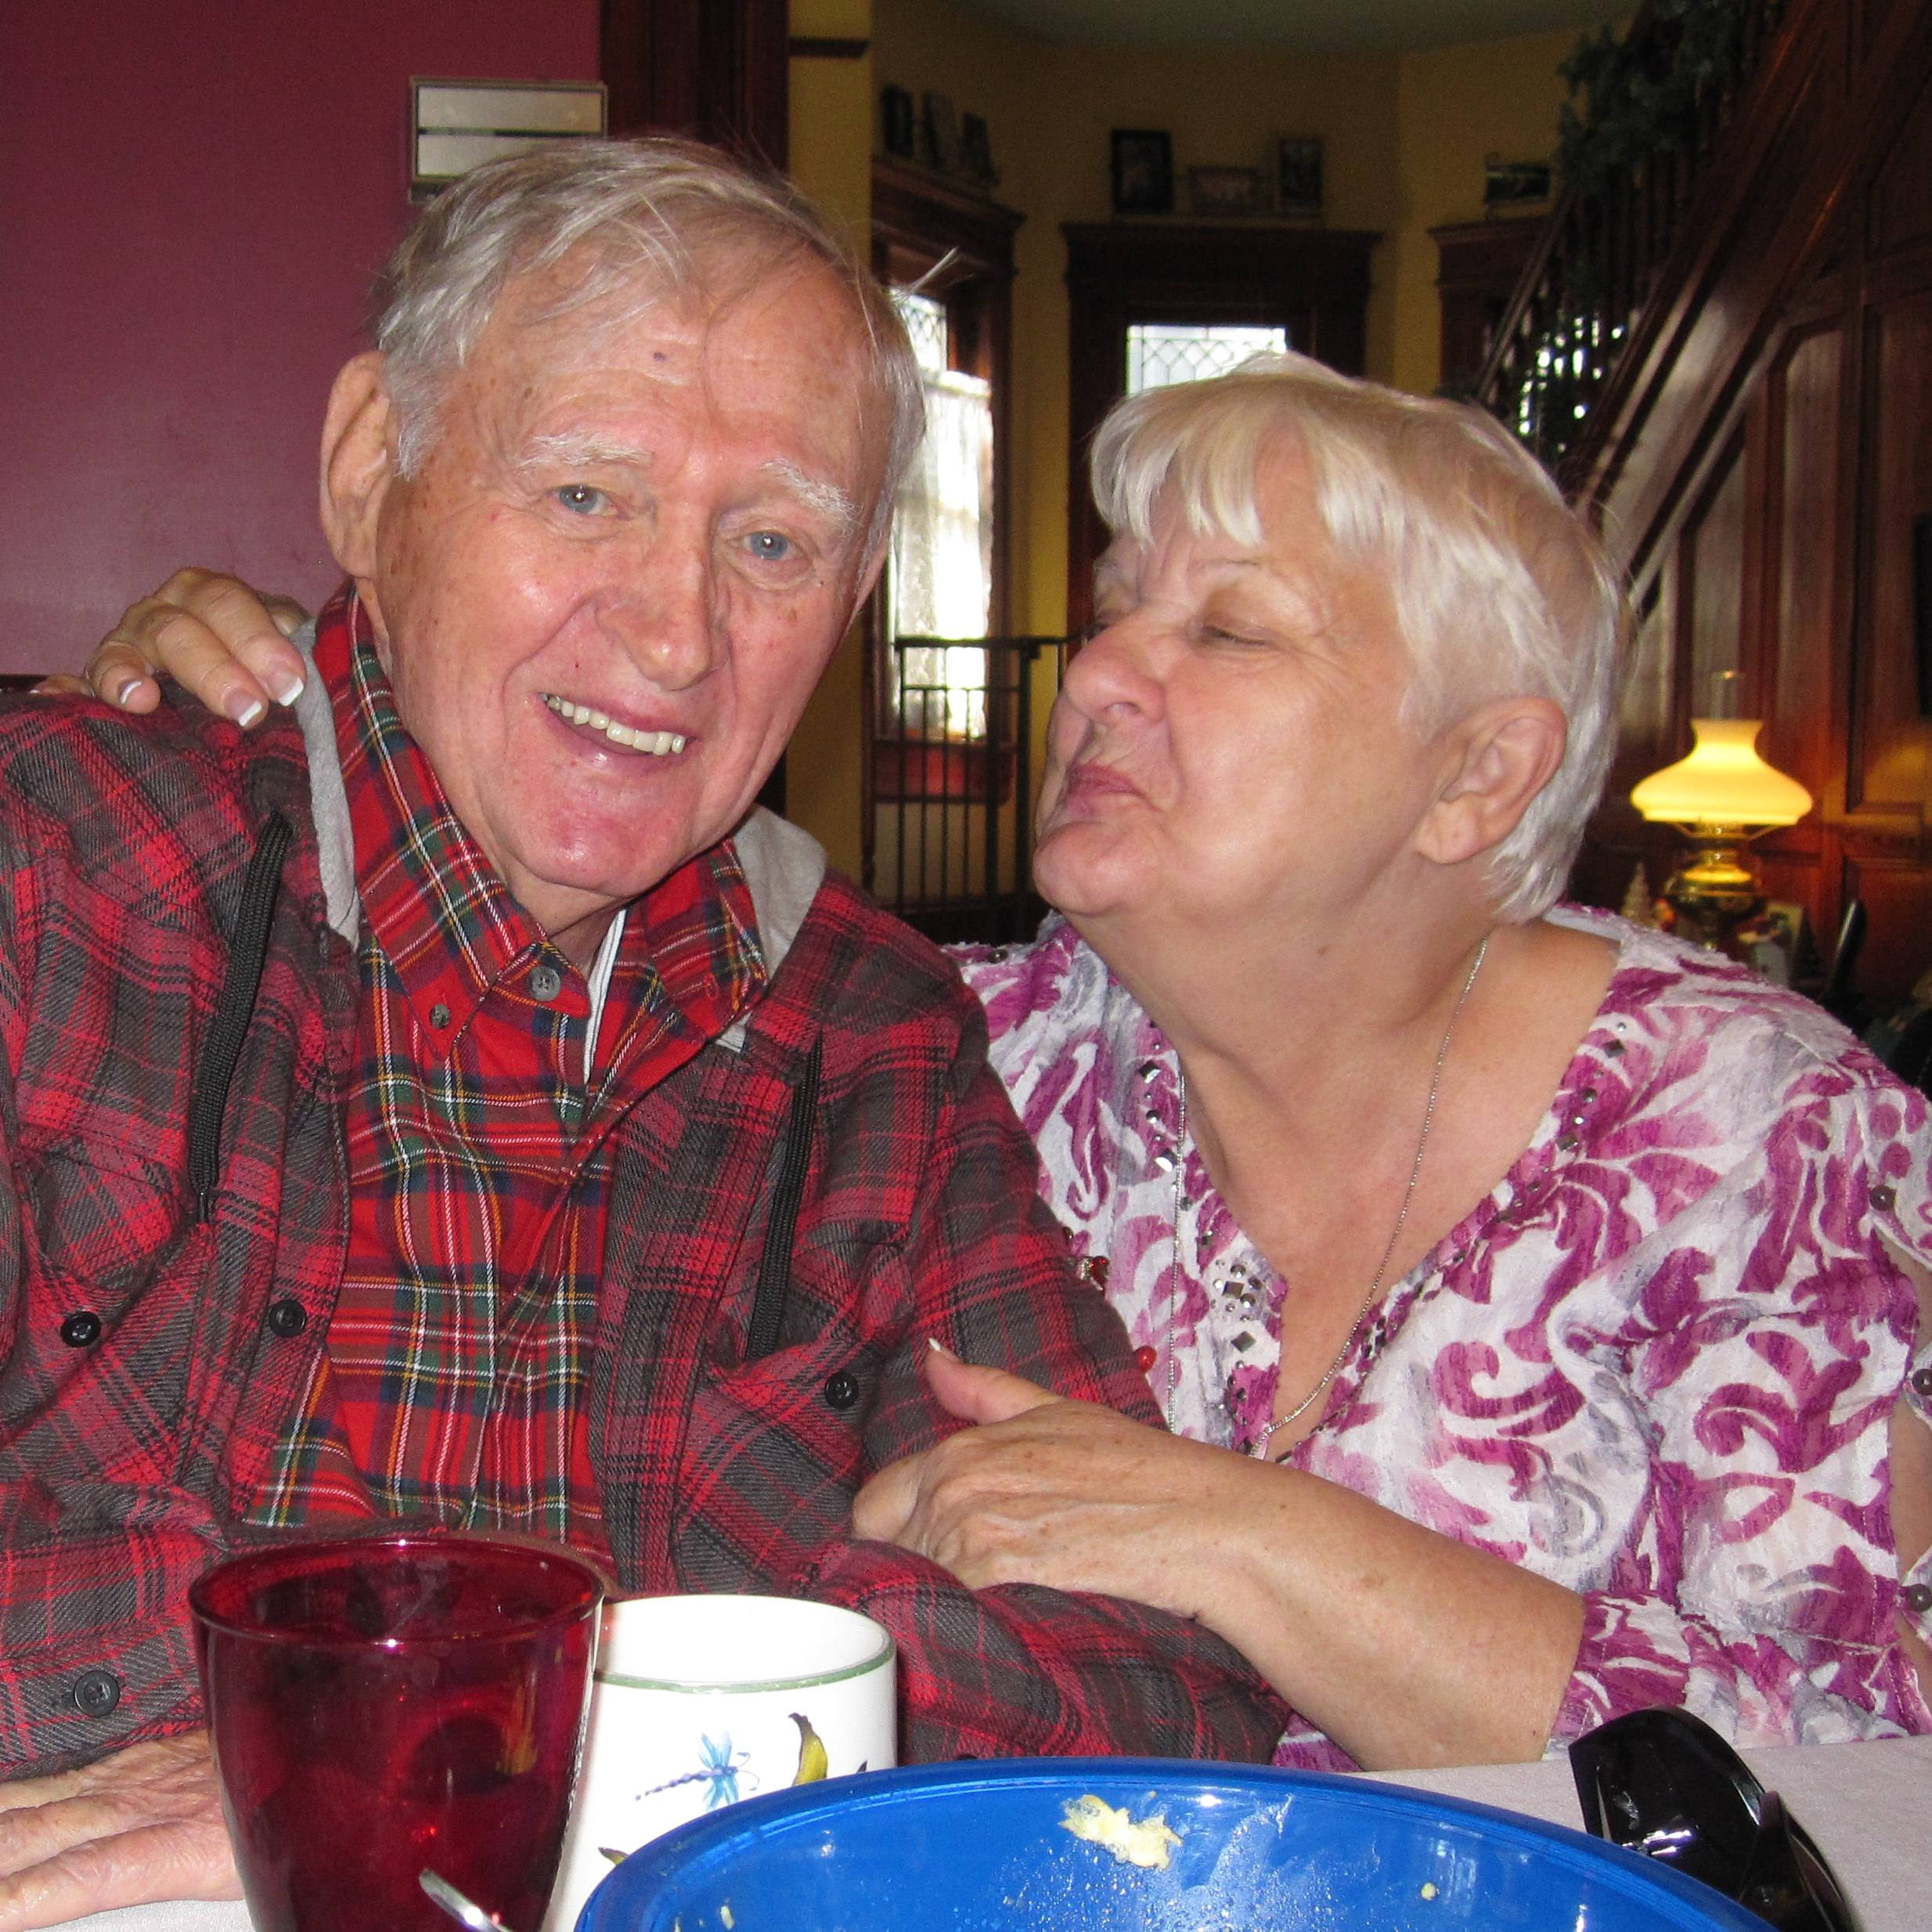 patient William Horne, a white man, sitting at a table in a plaid shirt and smiling with his wife, a white woman, hugging him